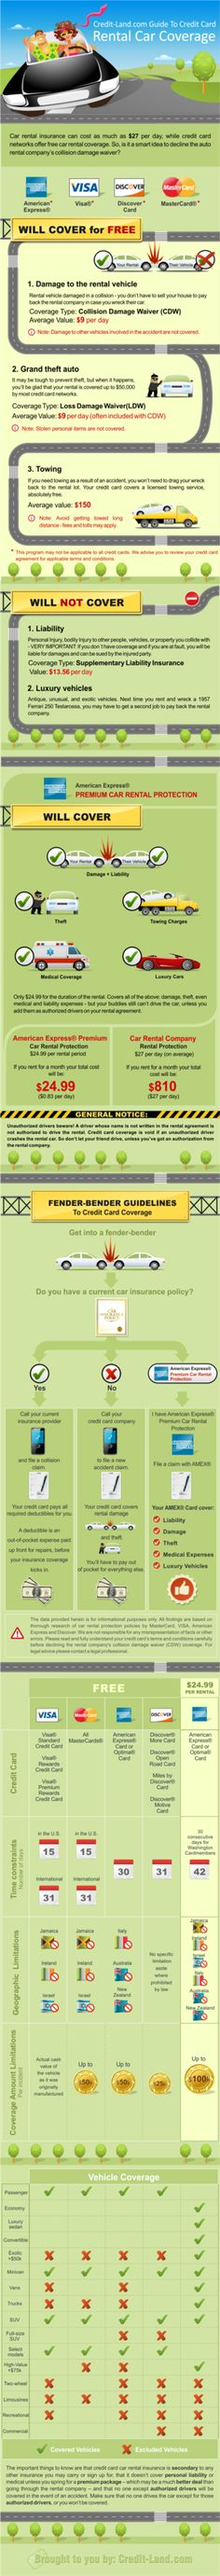 Credit Cards And Car Rental Insurance What S Covered And What S